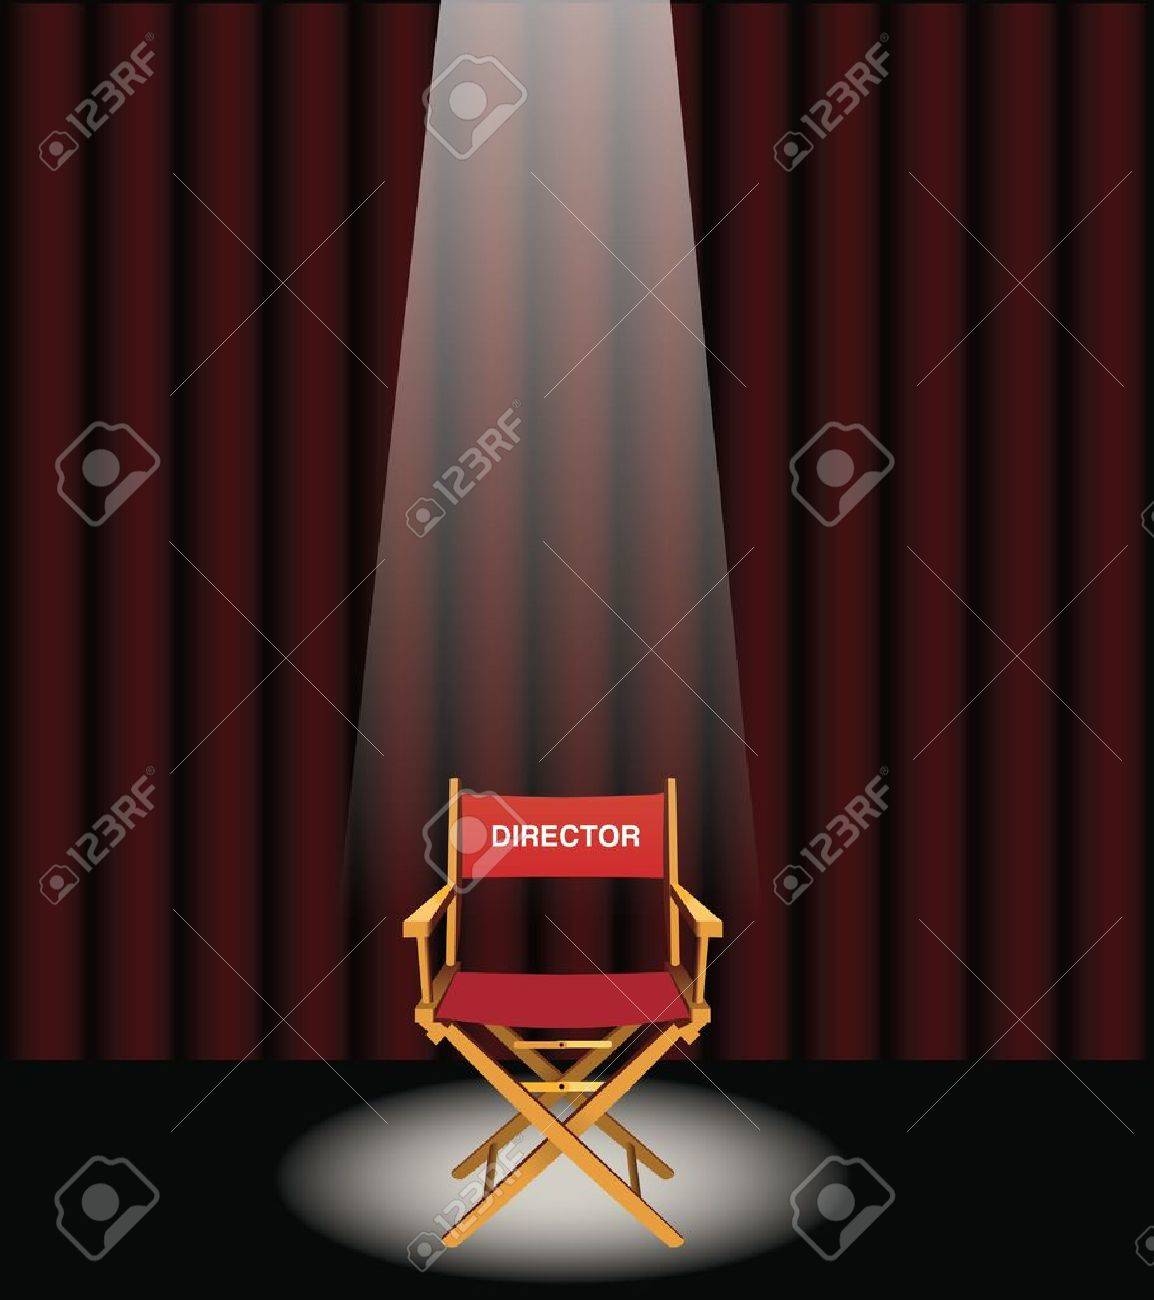 Red curtain spotlight - A Directors Chair On A Stage With A Red Curtain And Spotlight Stock Vector 19662382